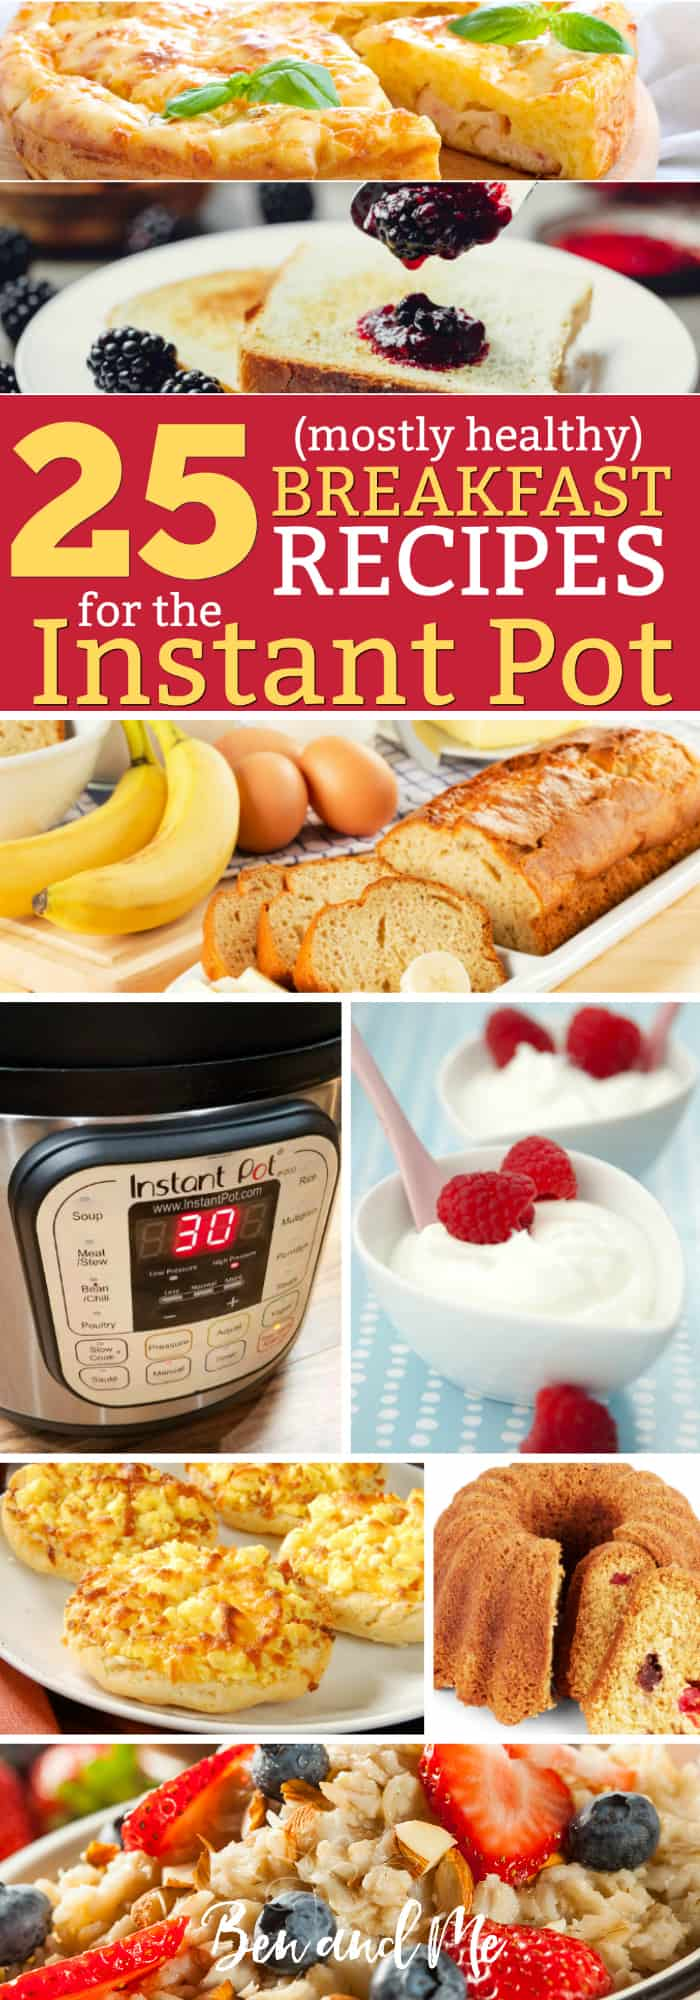 Make your busy mom life easier with these 25 (mostly healthy) breakfast recipes for the Instant Pot! What's your favorite breakfast recipe?